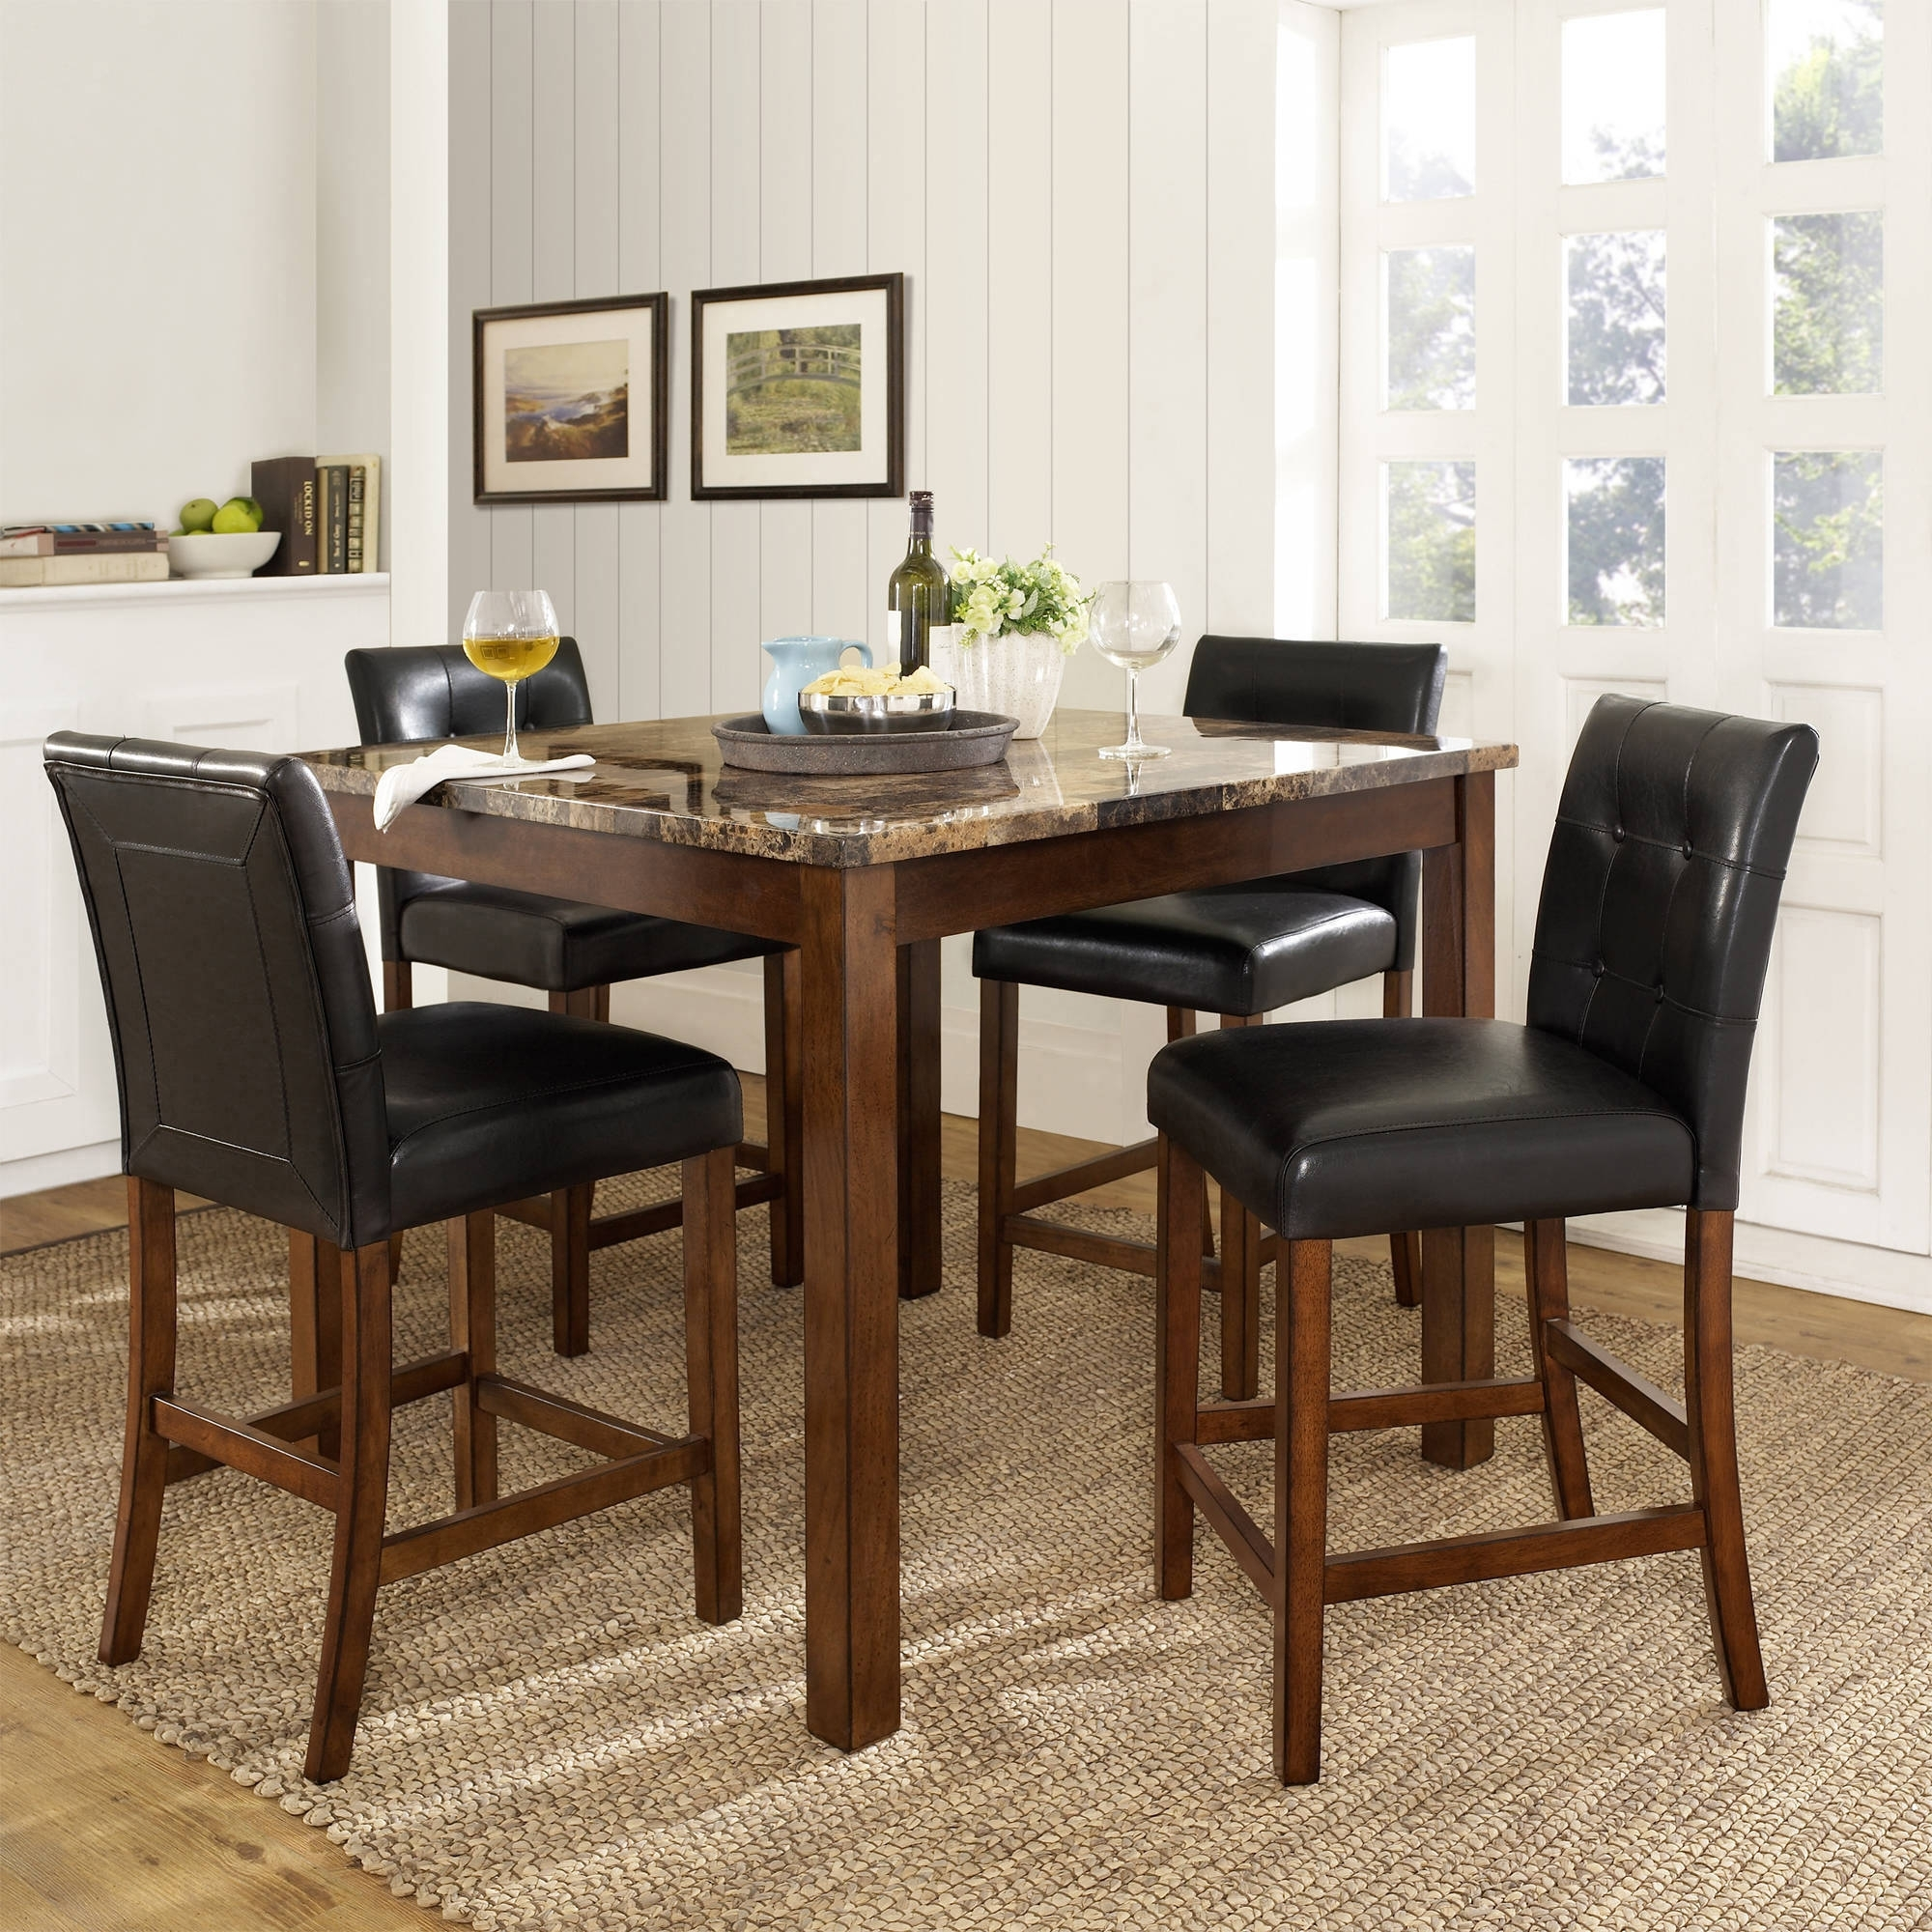 Dorel Living Andover 5 Piece Faux Marble Counter Height Dining Set For Recent Jaxon 5 Piece Round Dining Sets With Upholstered Chairs (Image 6 of 20)